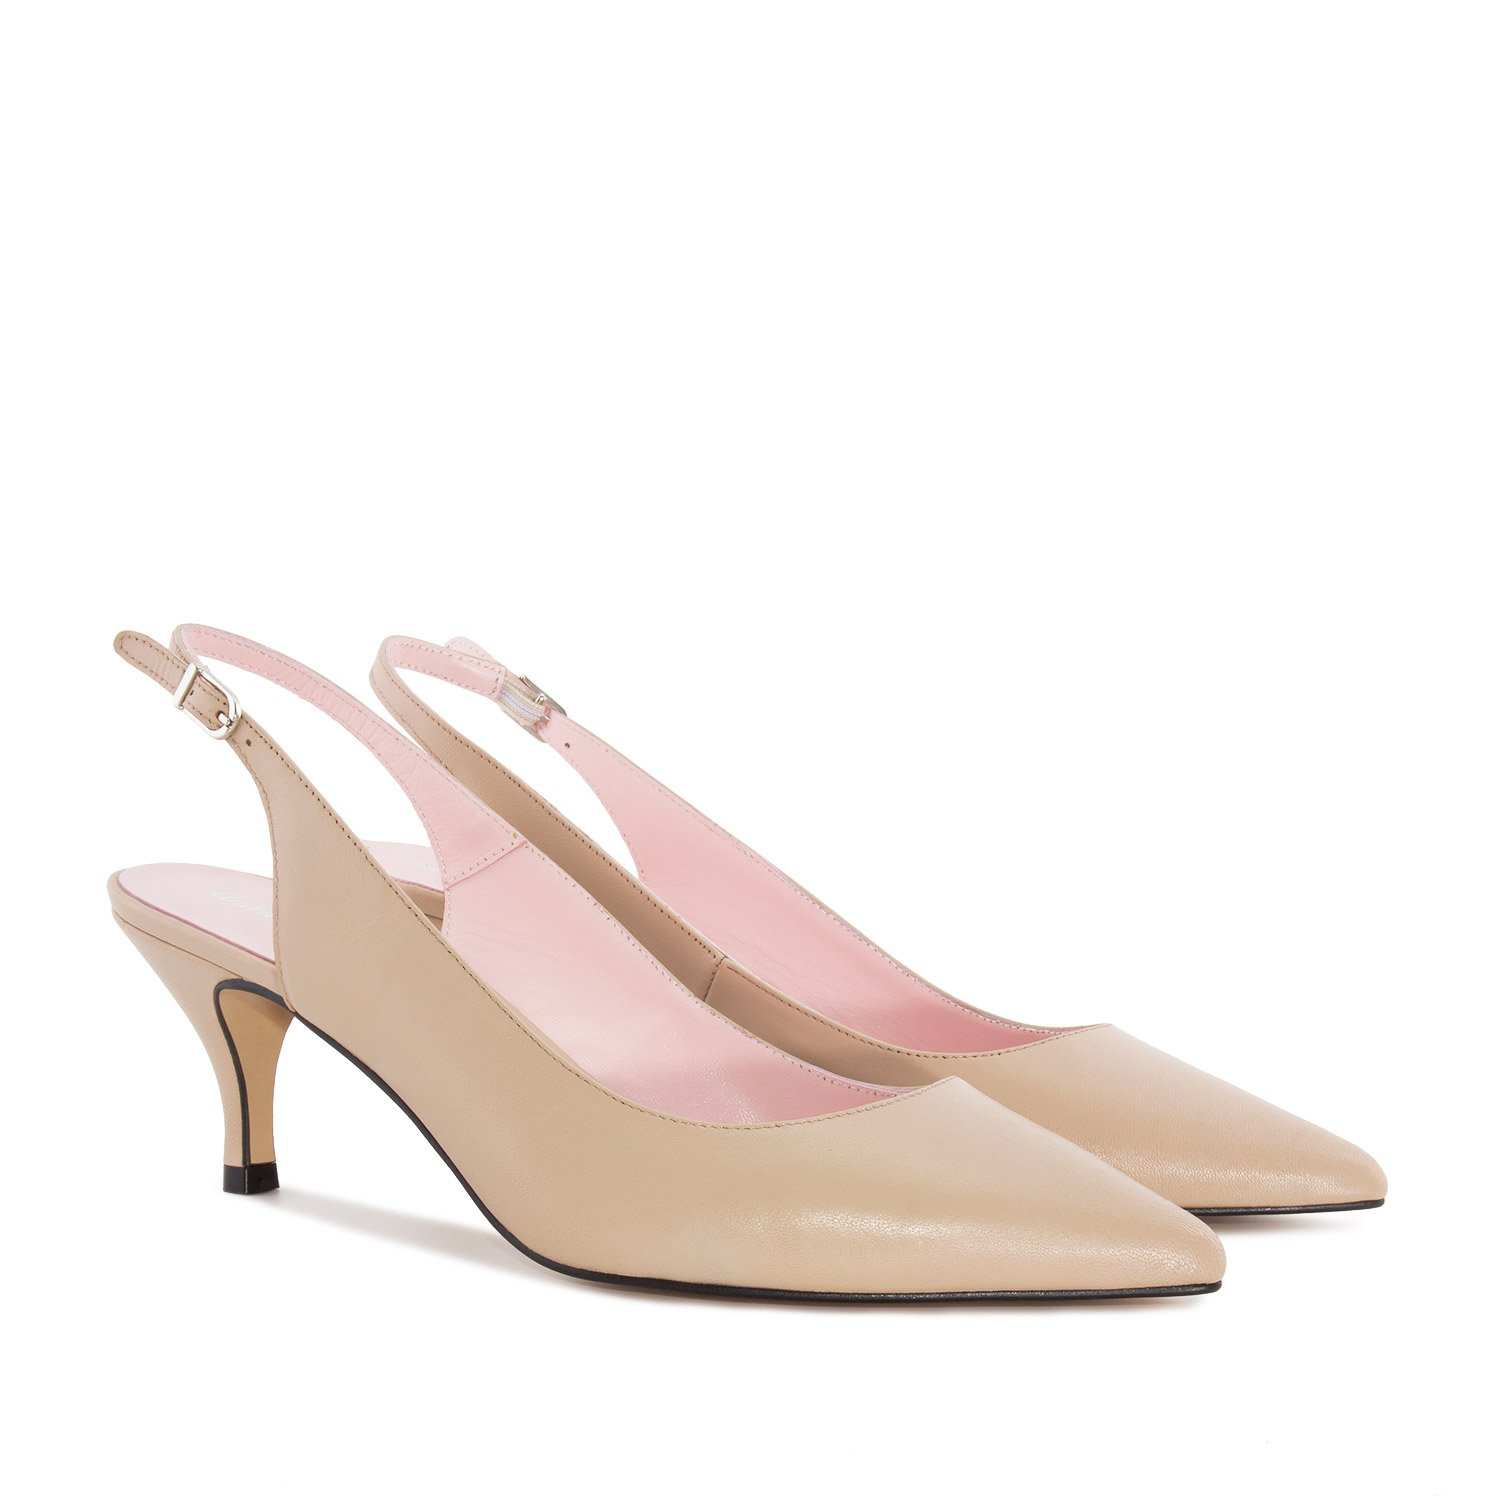 Andres Machado Fine Toe Slingback Shoes in Beige Leather, 43 M EU/11.5 B (M) US by Andres Machado (Image #1)